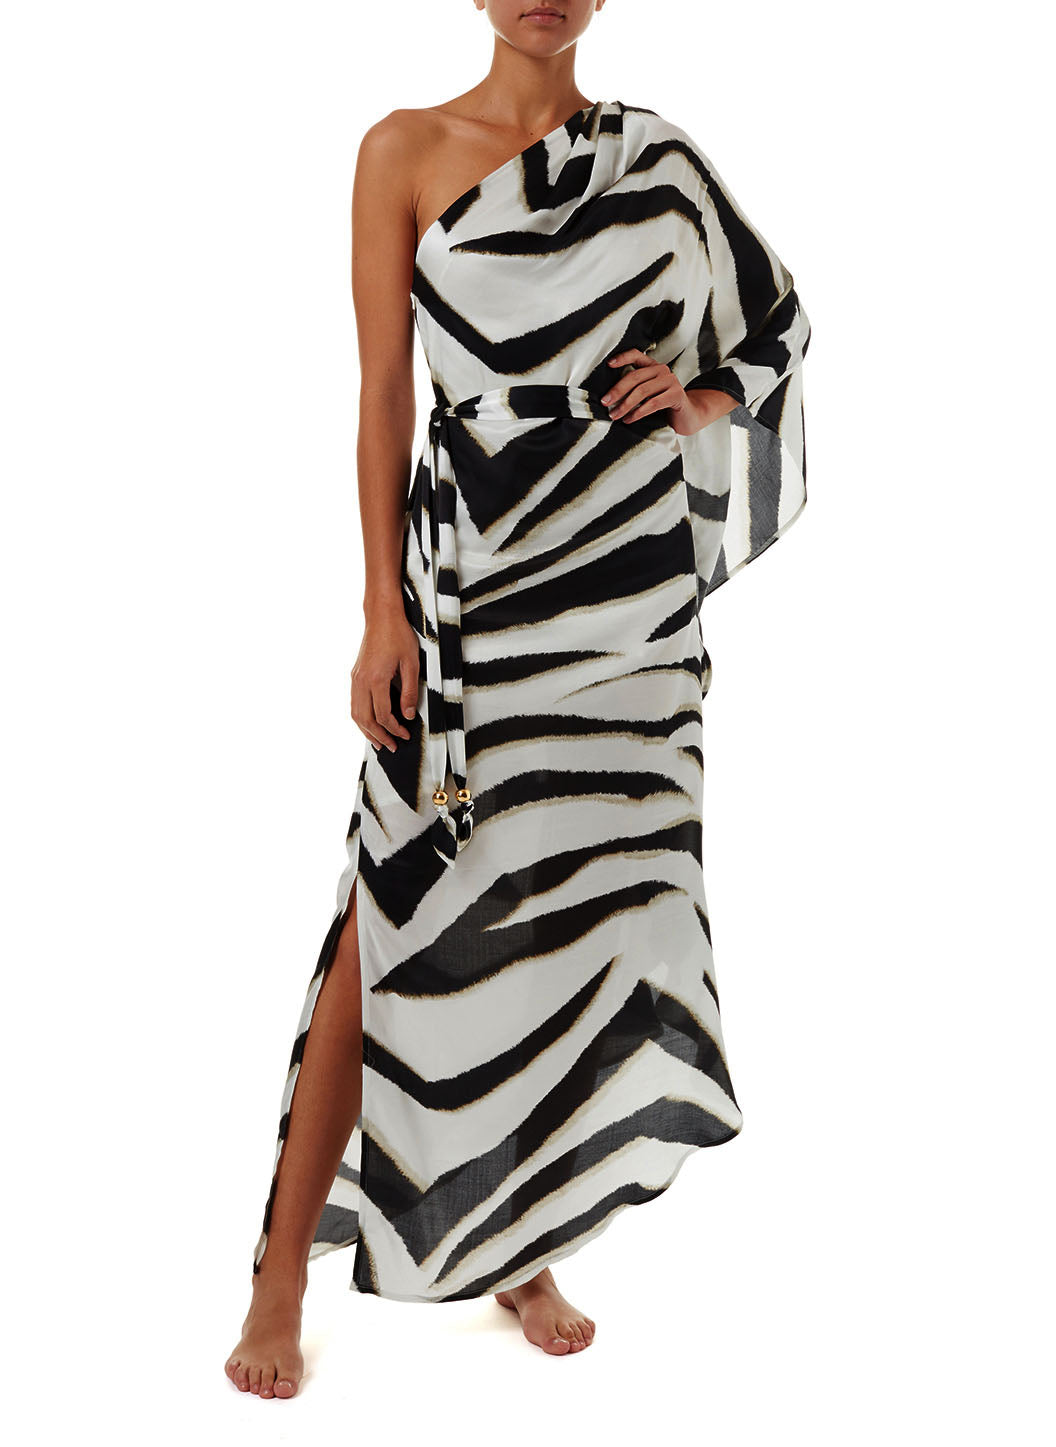 Lauren Zebra One Shoulder Dress